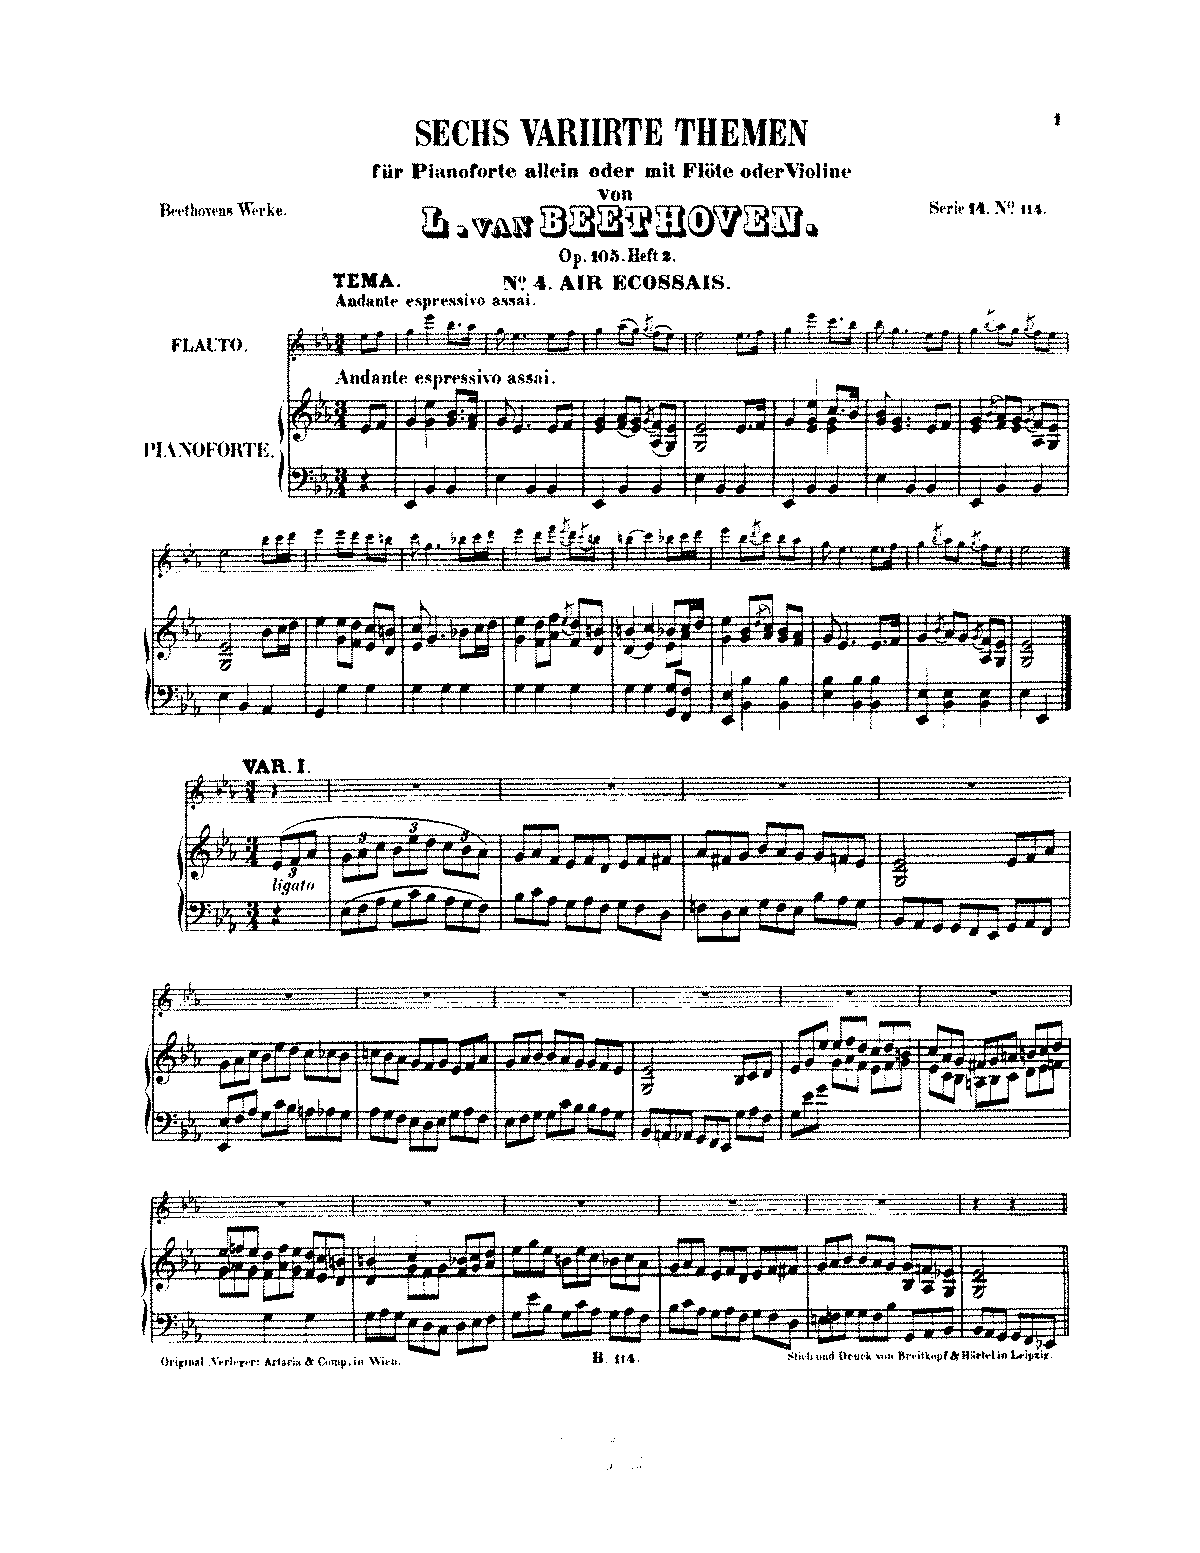 Beethoven 6themesandvariations op105 heft2 piano.pdf